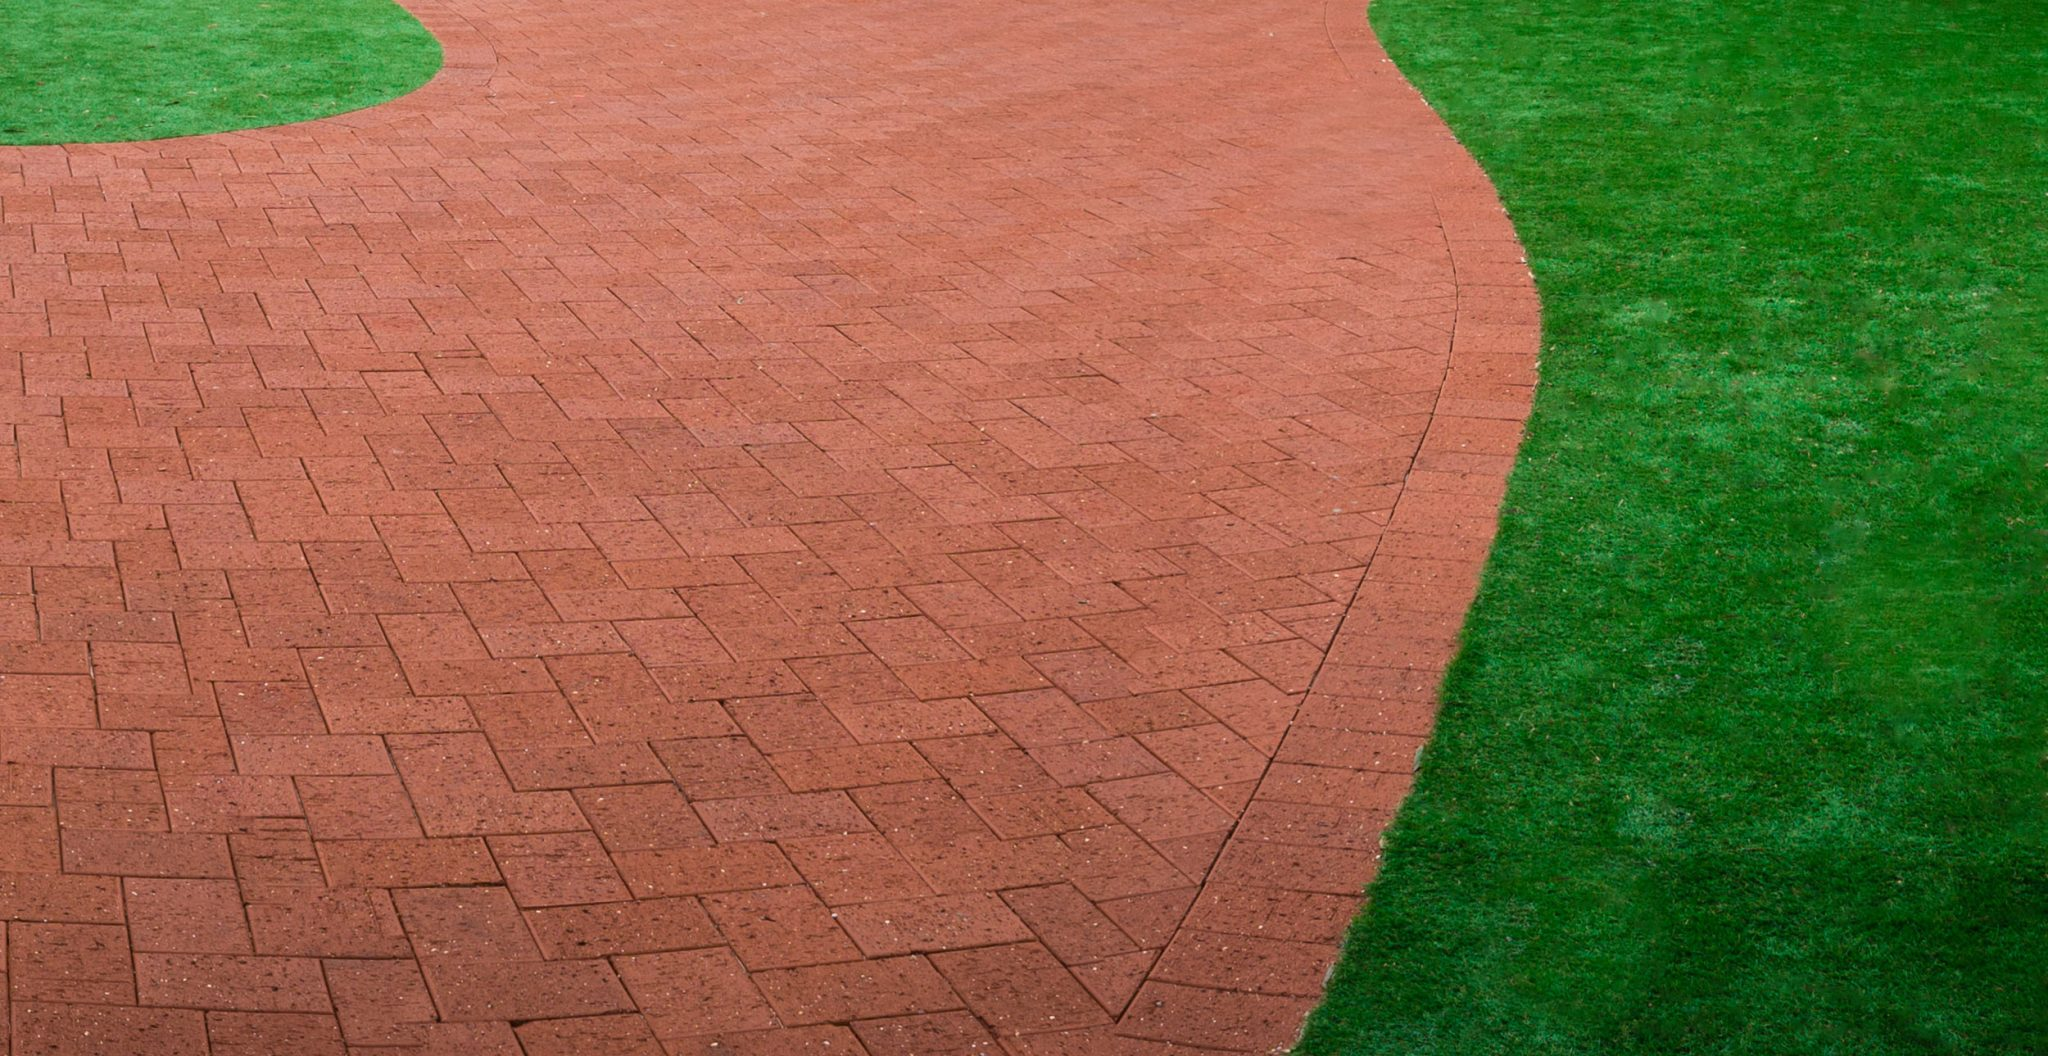 commercial landscaping design services paving and synthetic grass